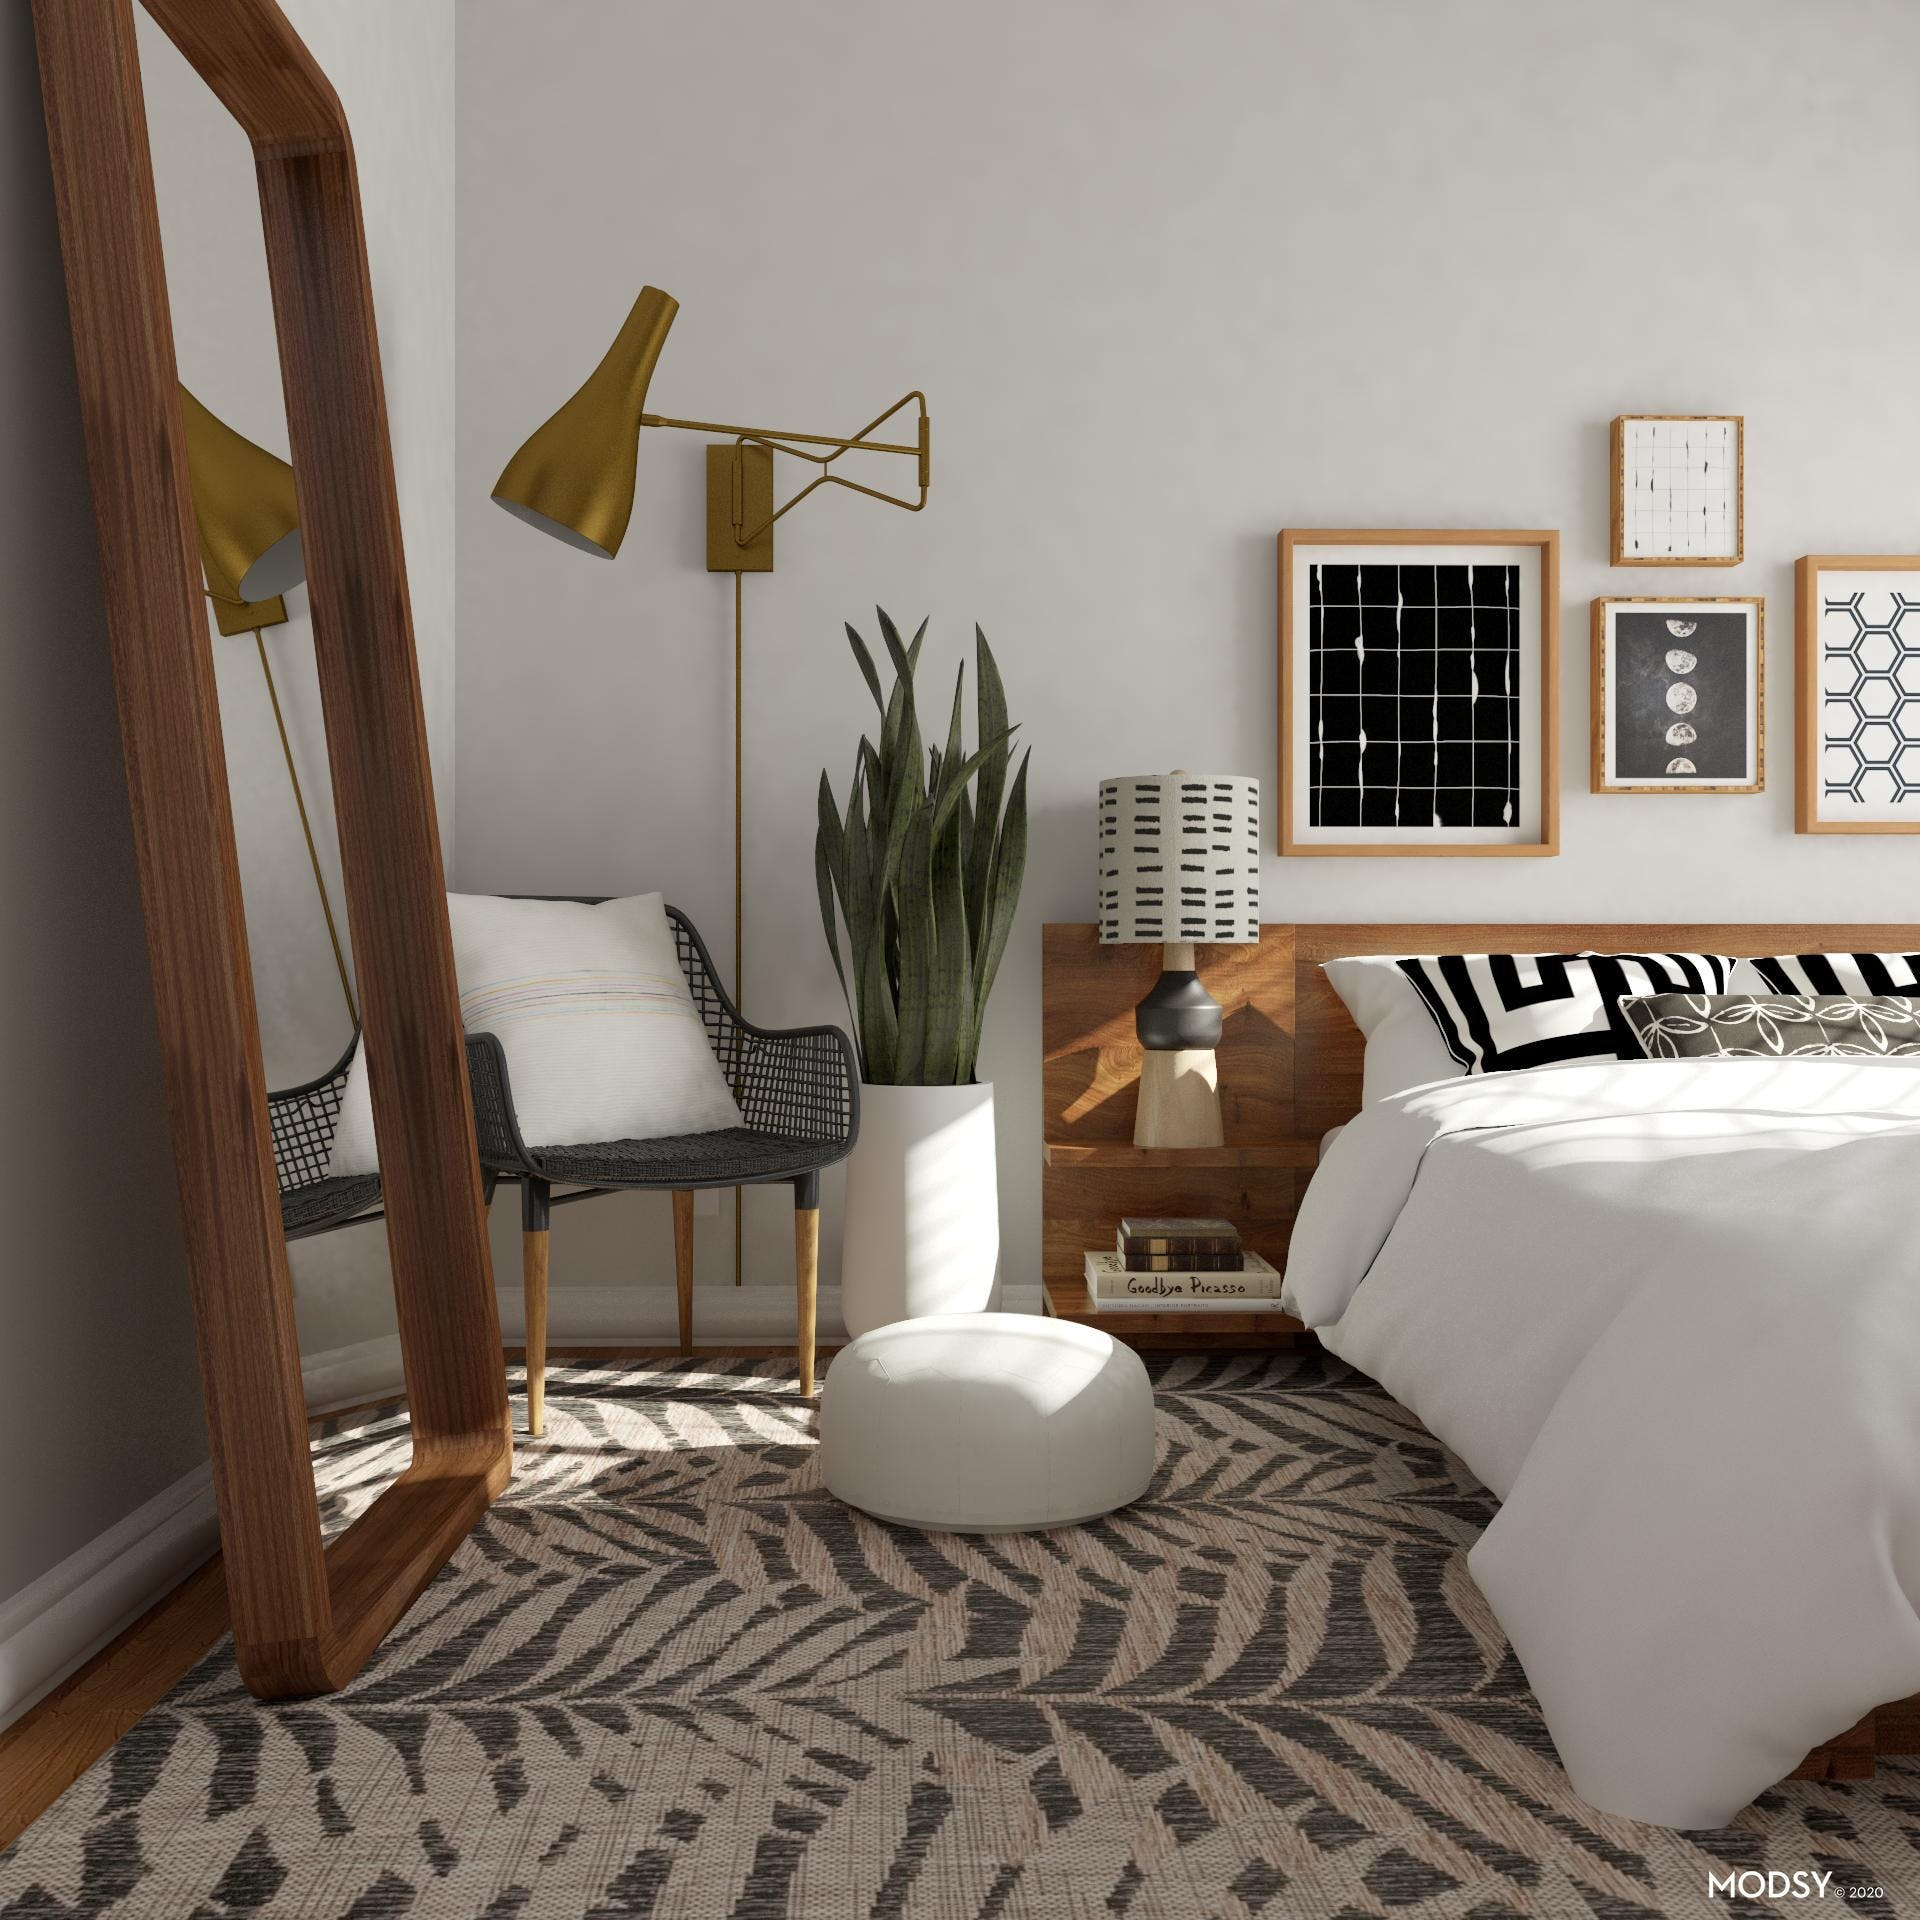 Geomeclectic: Bedroom